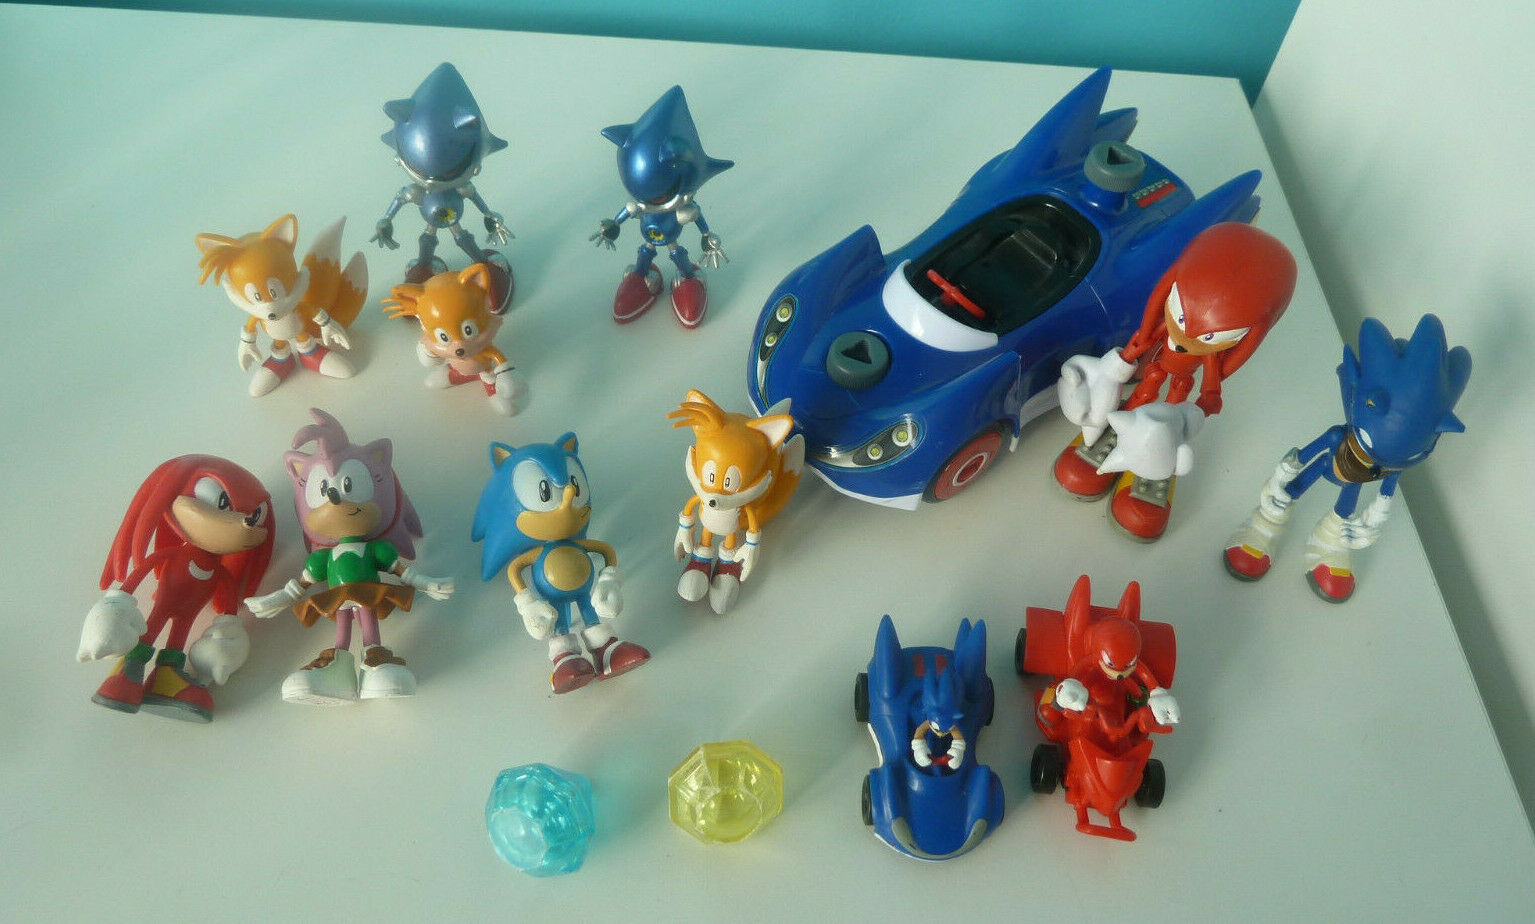 Bundle of Sega Sonic The Hedgehog Action Figures Plastic Toys Cars Gems